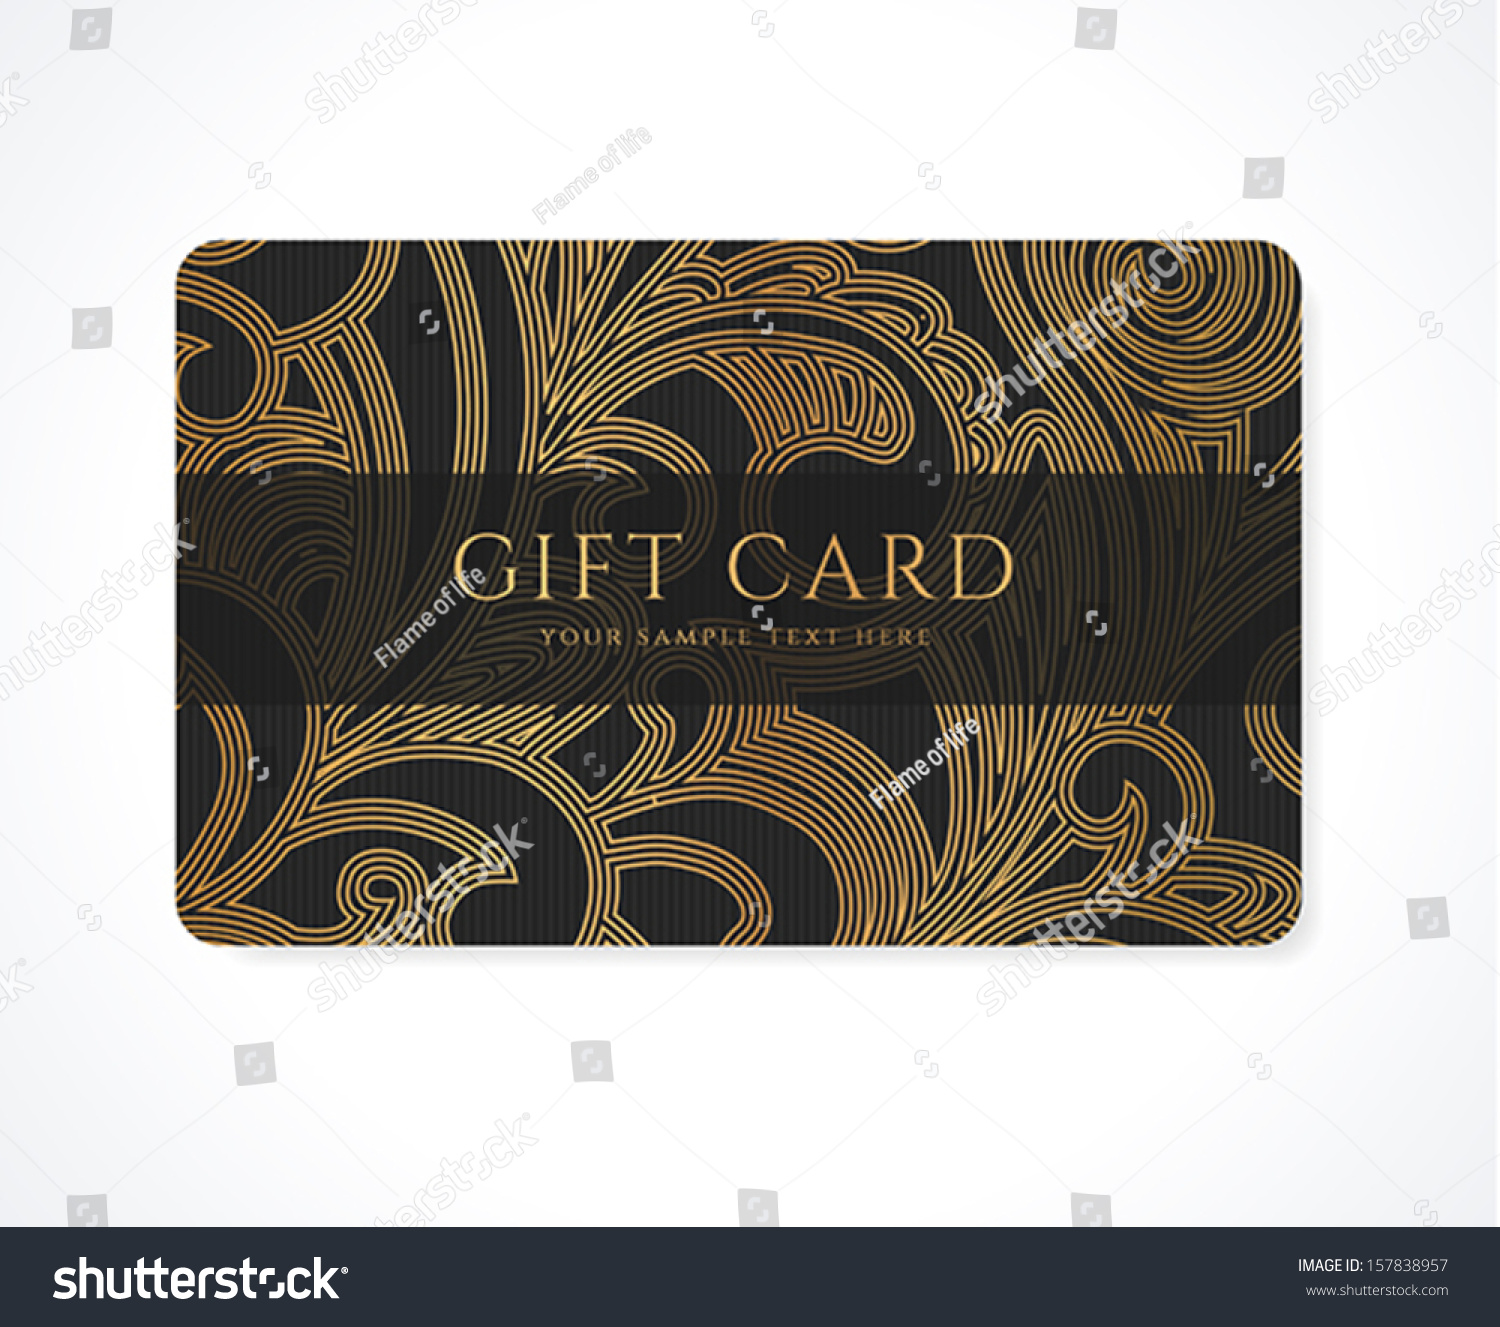 t card discount card business card stock vector